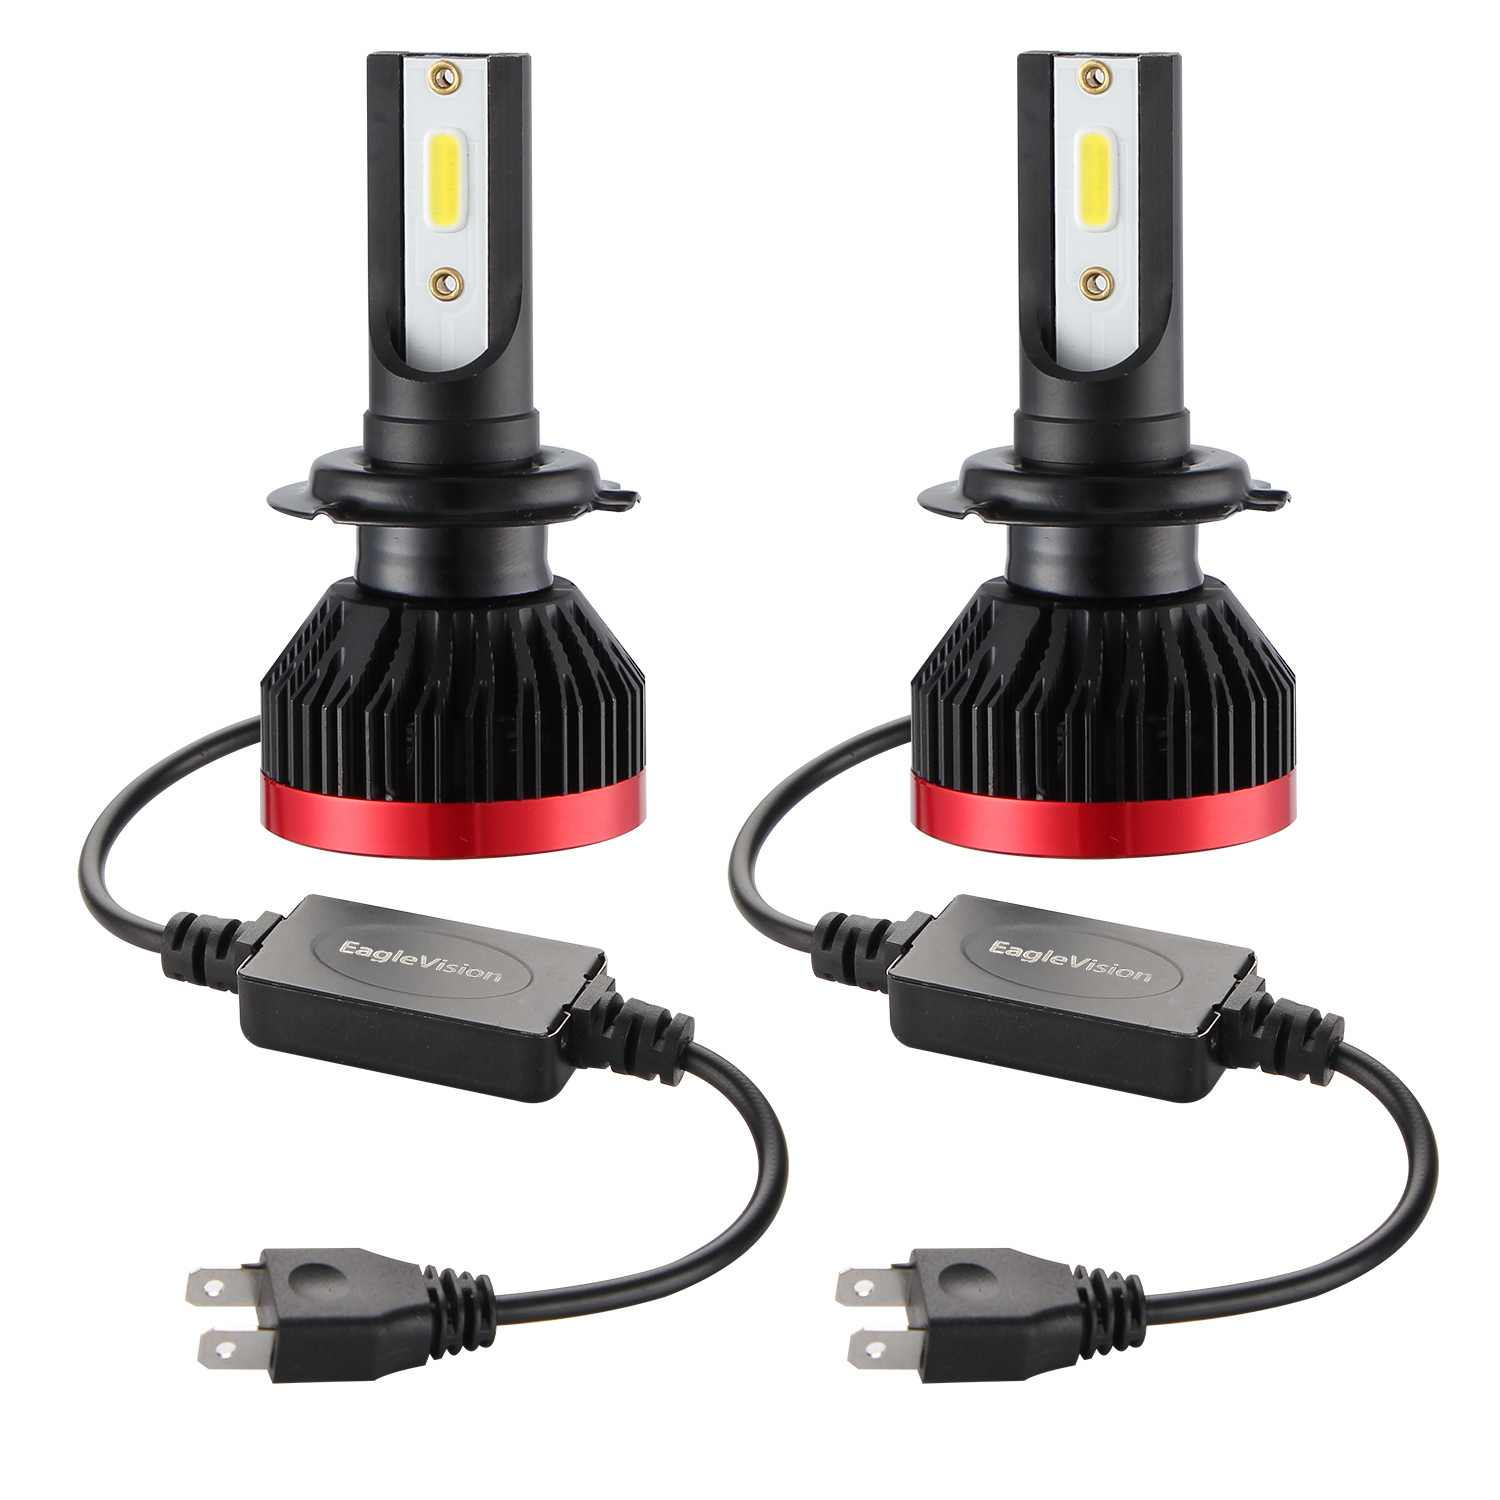 2Pcs H7 LED H4 H11 LED H1 9005 9006 Auto Car Headlight Bulbs 110W 26000LM  Car Light 6000k Led Automotivo DC12V 24V